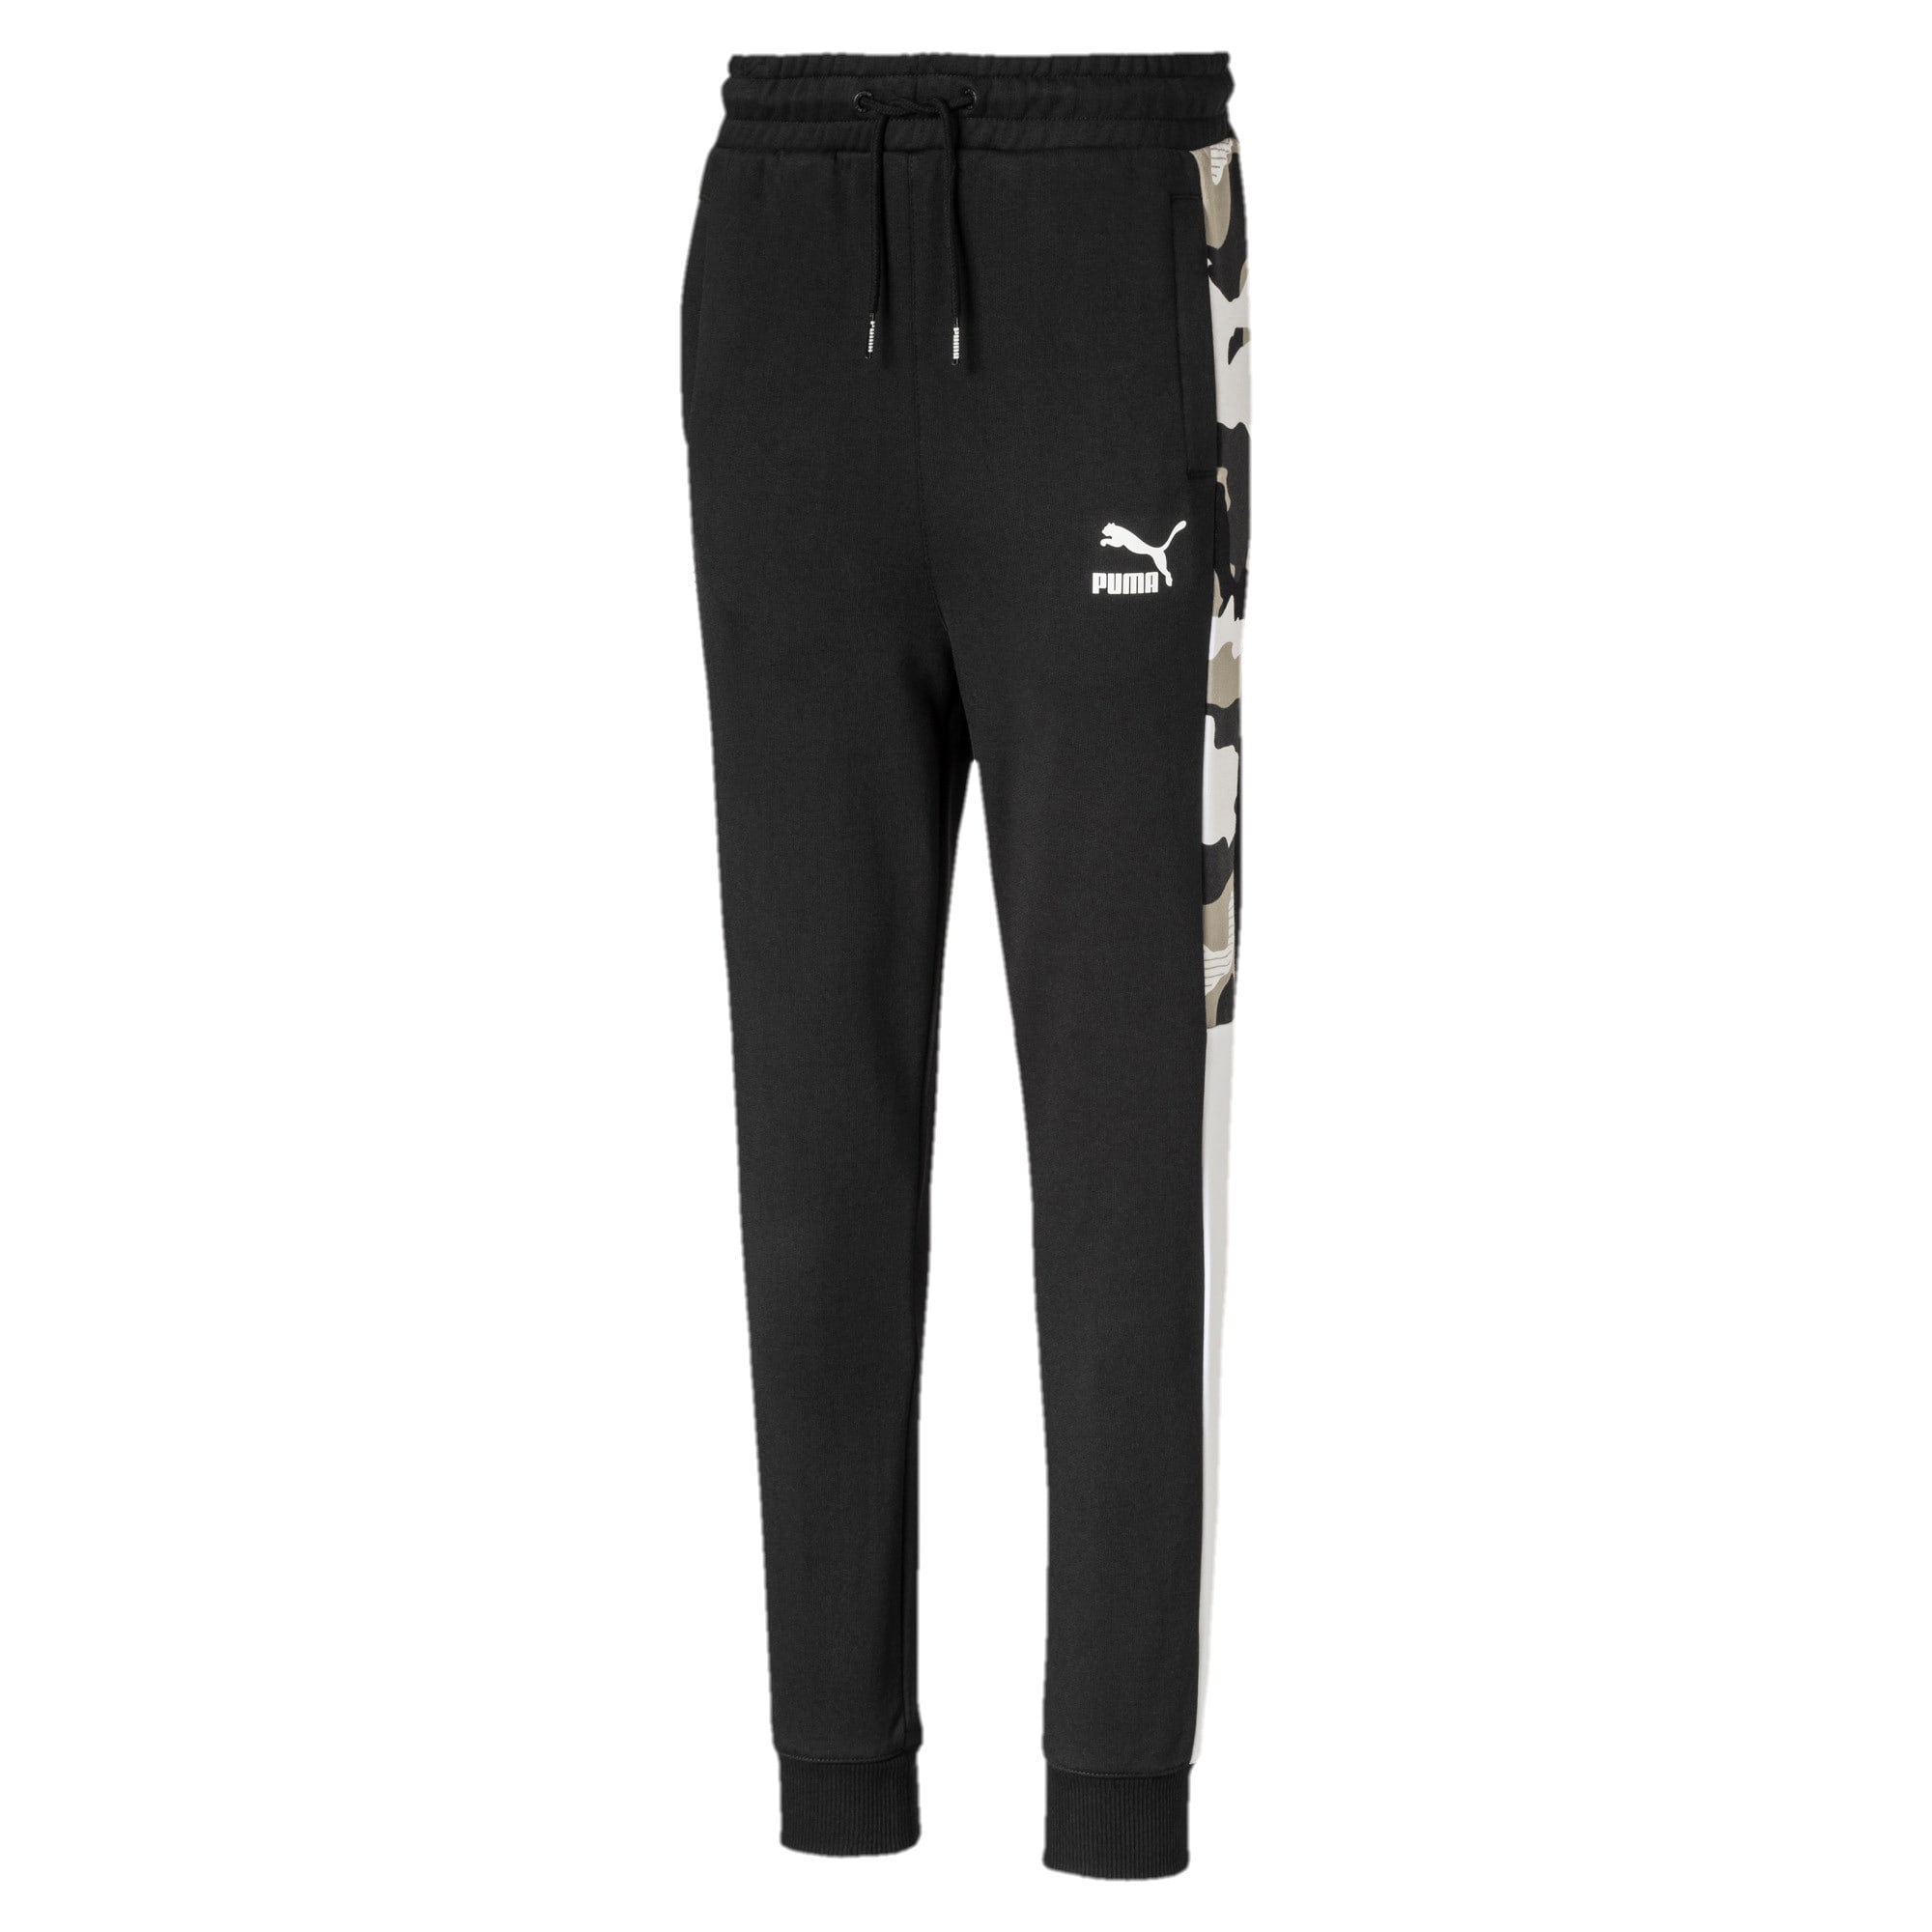 Thumbnail 1 of Classics T7 Boys' Track Pants, Puma Black, medium